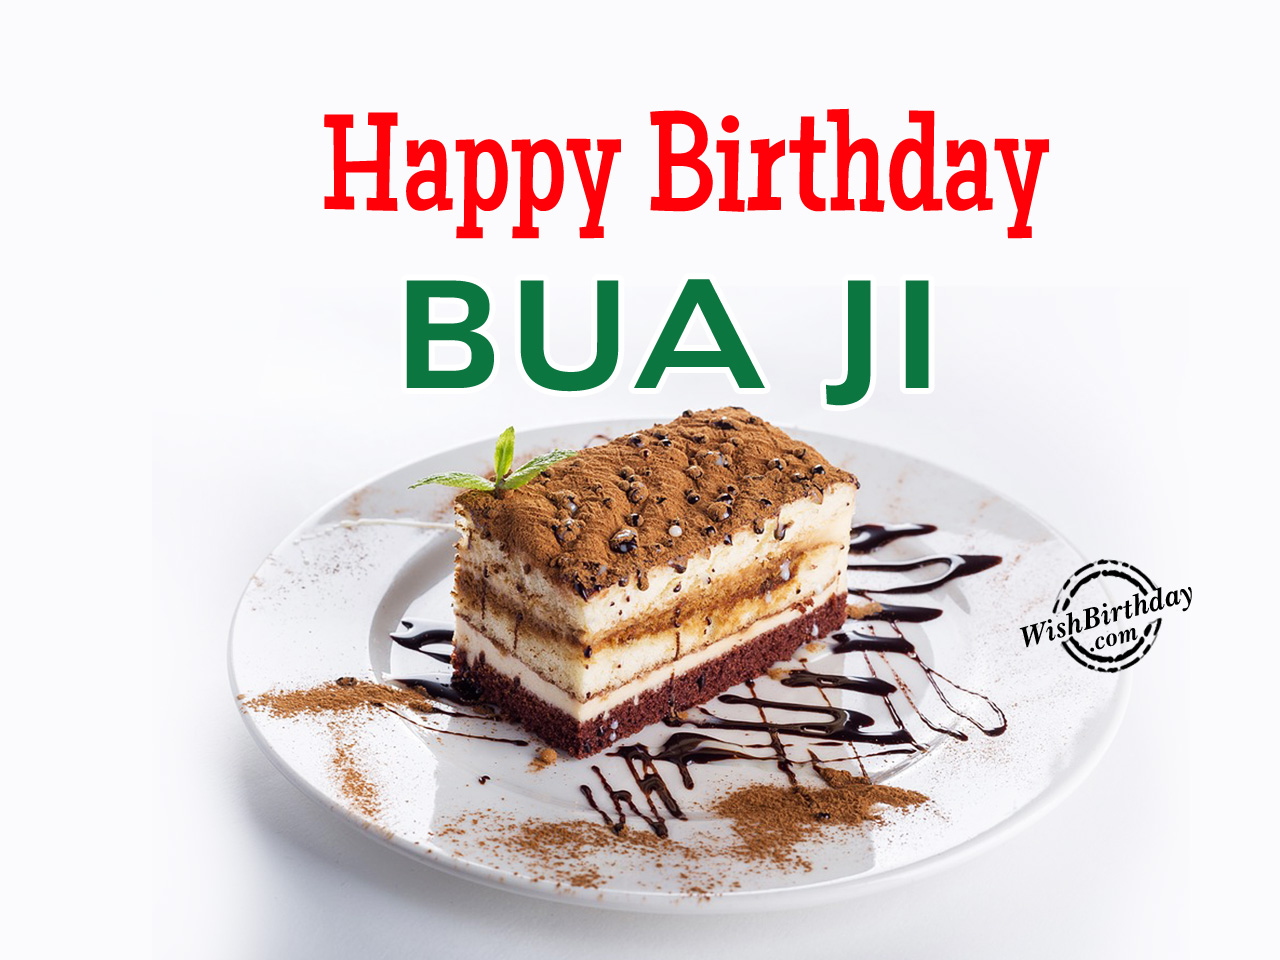 Birthday wishes for bua ji birthday images pictures i am very happy to celebrate your birthdayhappy birthday bua ji bookmarktalkfo Image collections